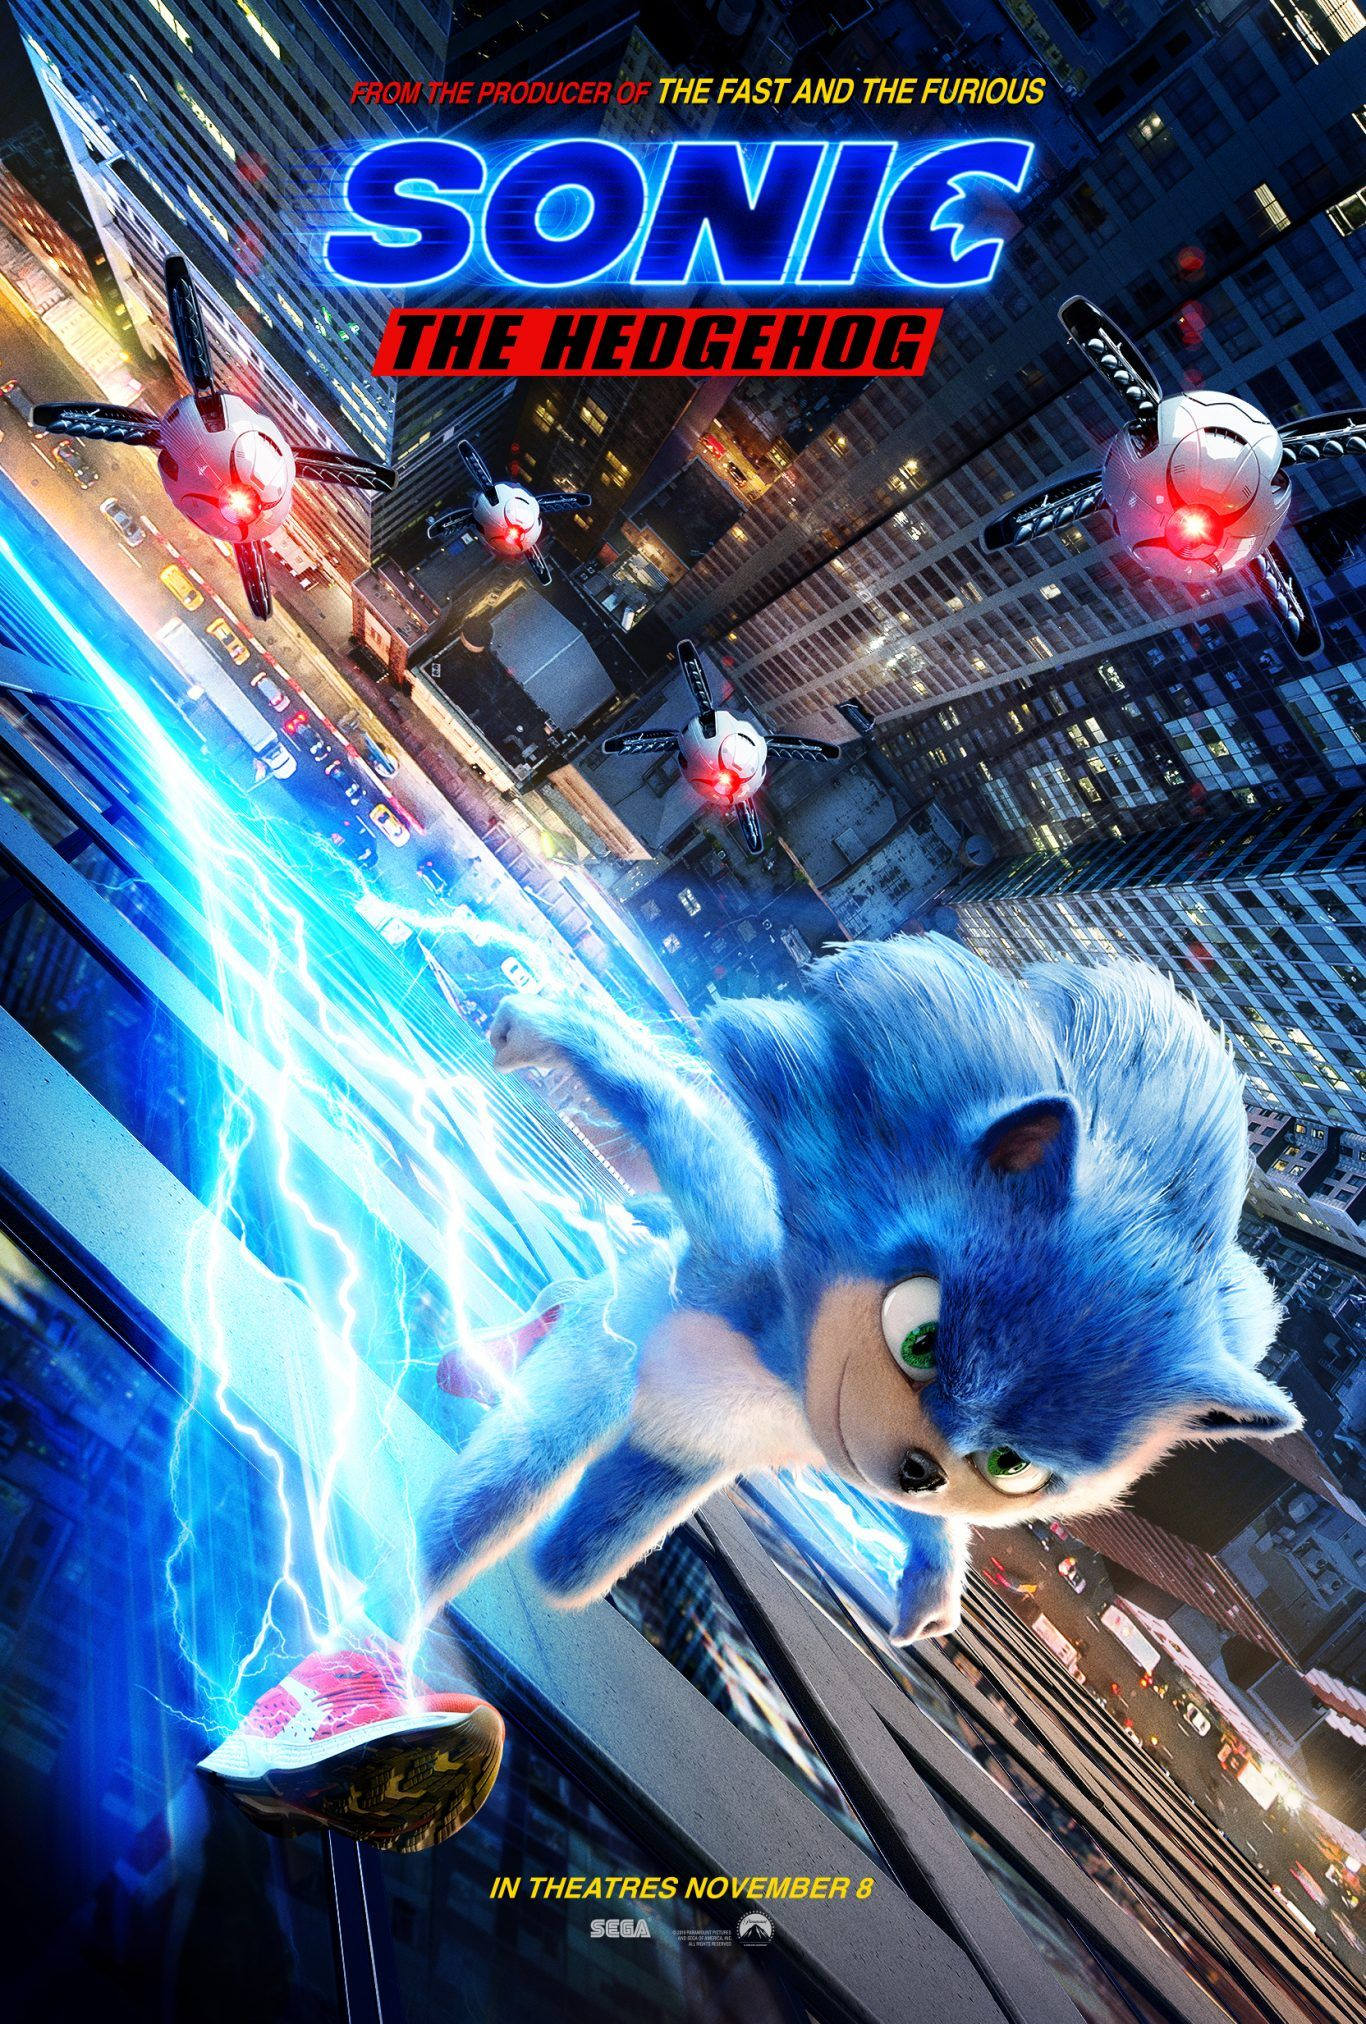 Don T Miss Sonic The Hedgehog Coming To Theaters In November Sonicmovie Hedgehog Movie Sonic The Hedgehog Sonic